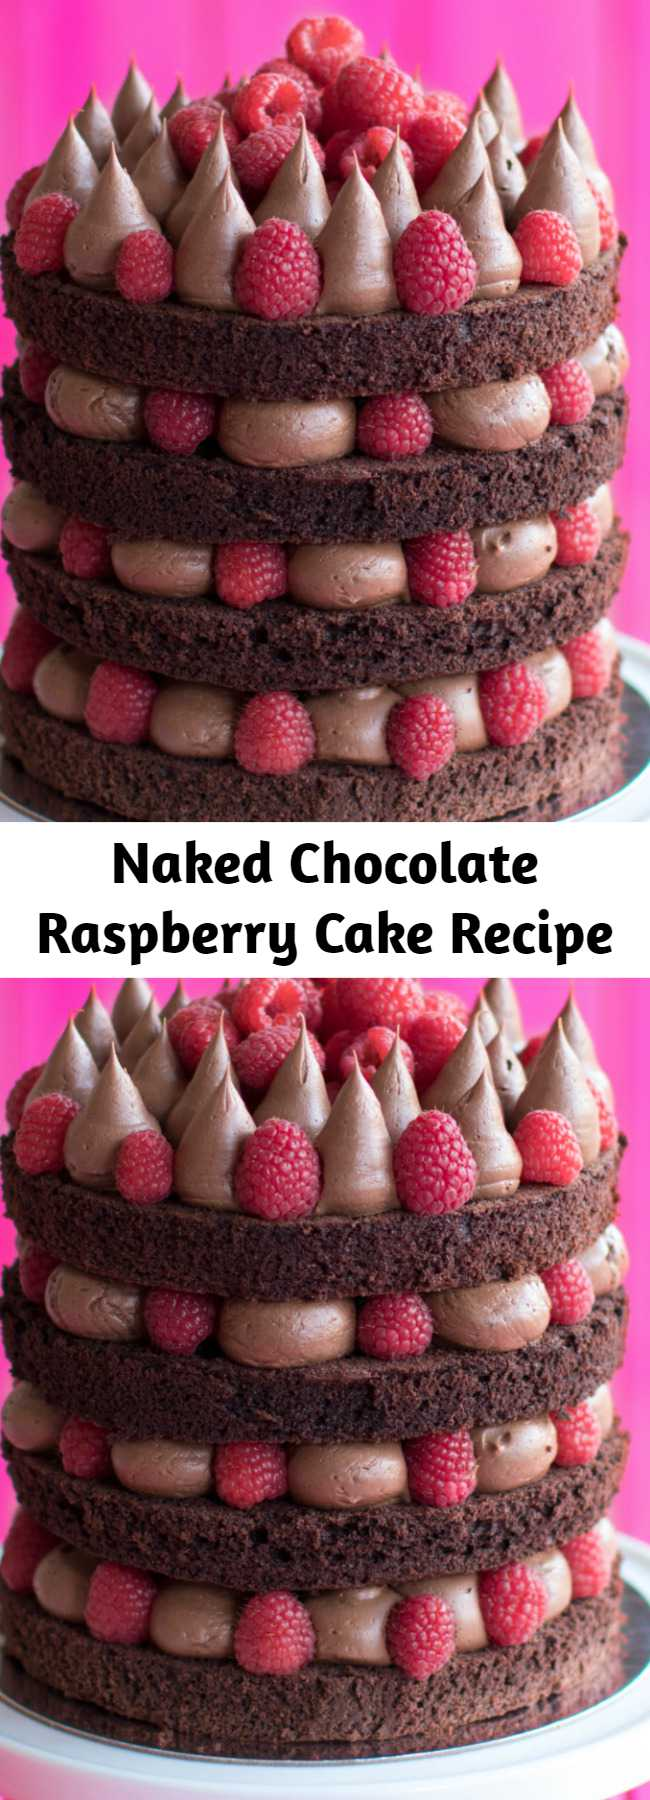 Naked Chocolate Raspberry Cake Recipe - Did somebody say chocolate & raspberries? * removes clothes *